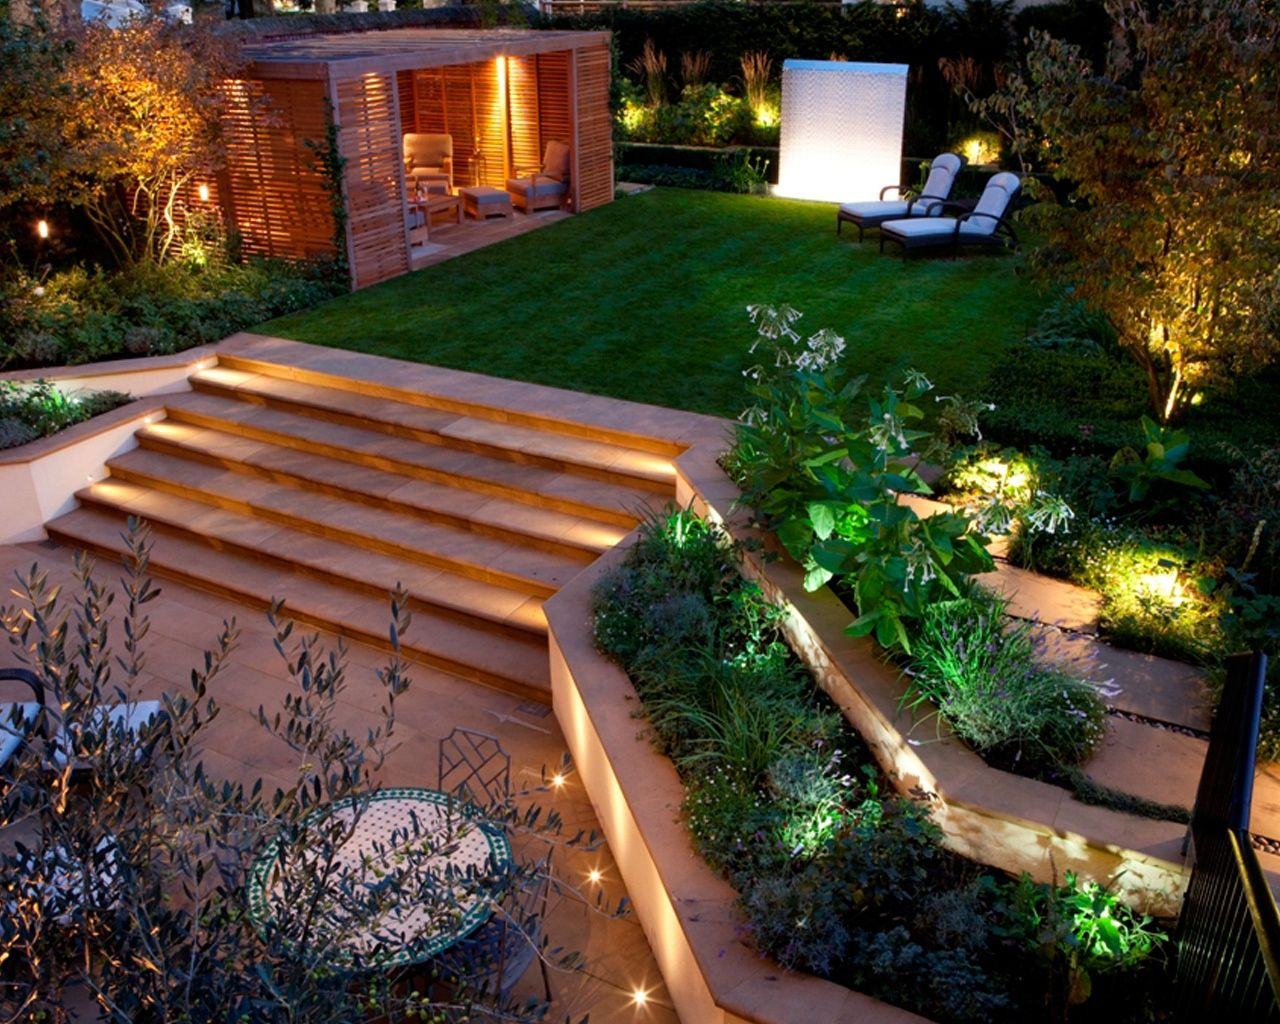 Garden Ideas best 25 garden layouts ideas on pinterest 50 Modern Garden Design Ideas To Try In 2017